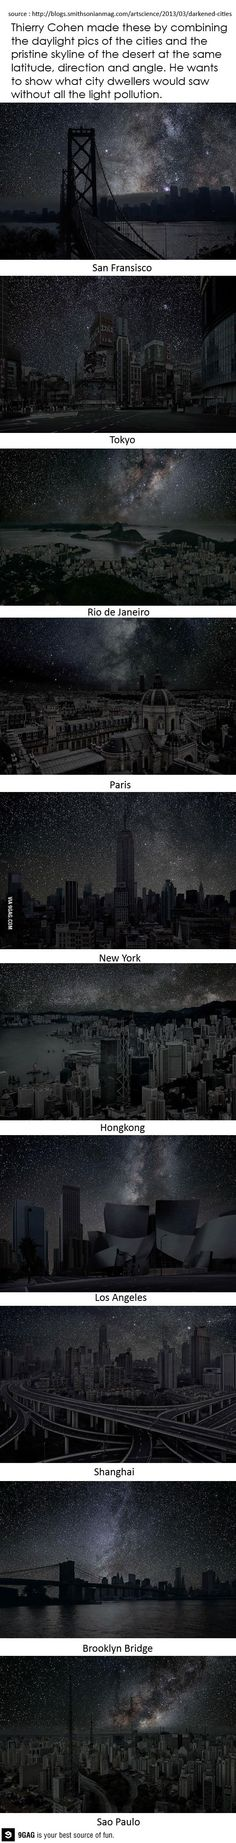 Thierry Cohen made these by combining the daylight pics of the cities and the pristine skyline of the desert at the same latitude, direction, and angle. He wants to show what city dwellers would see without all the light pollution